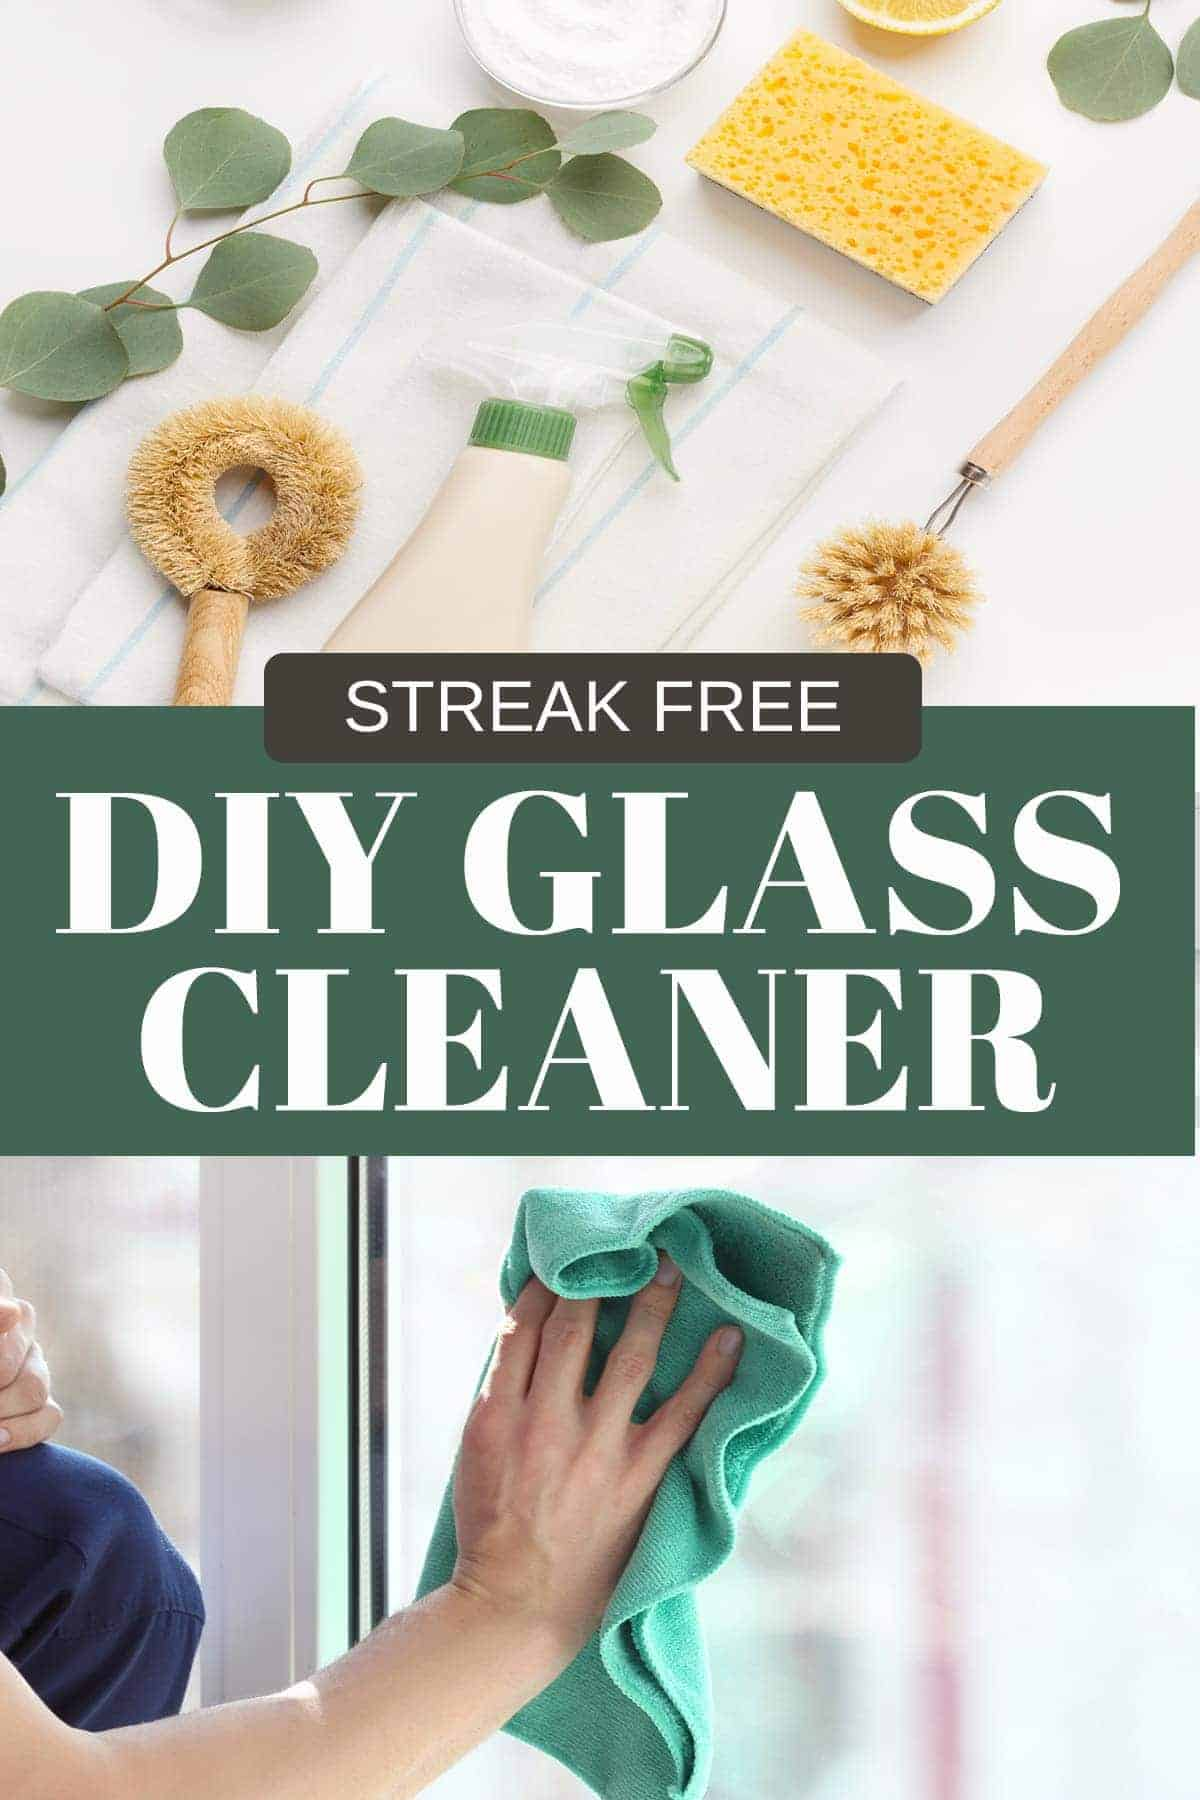 Collage of Cleaning products in use for diy glass cleaner.